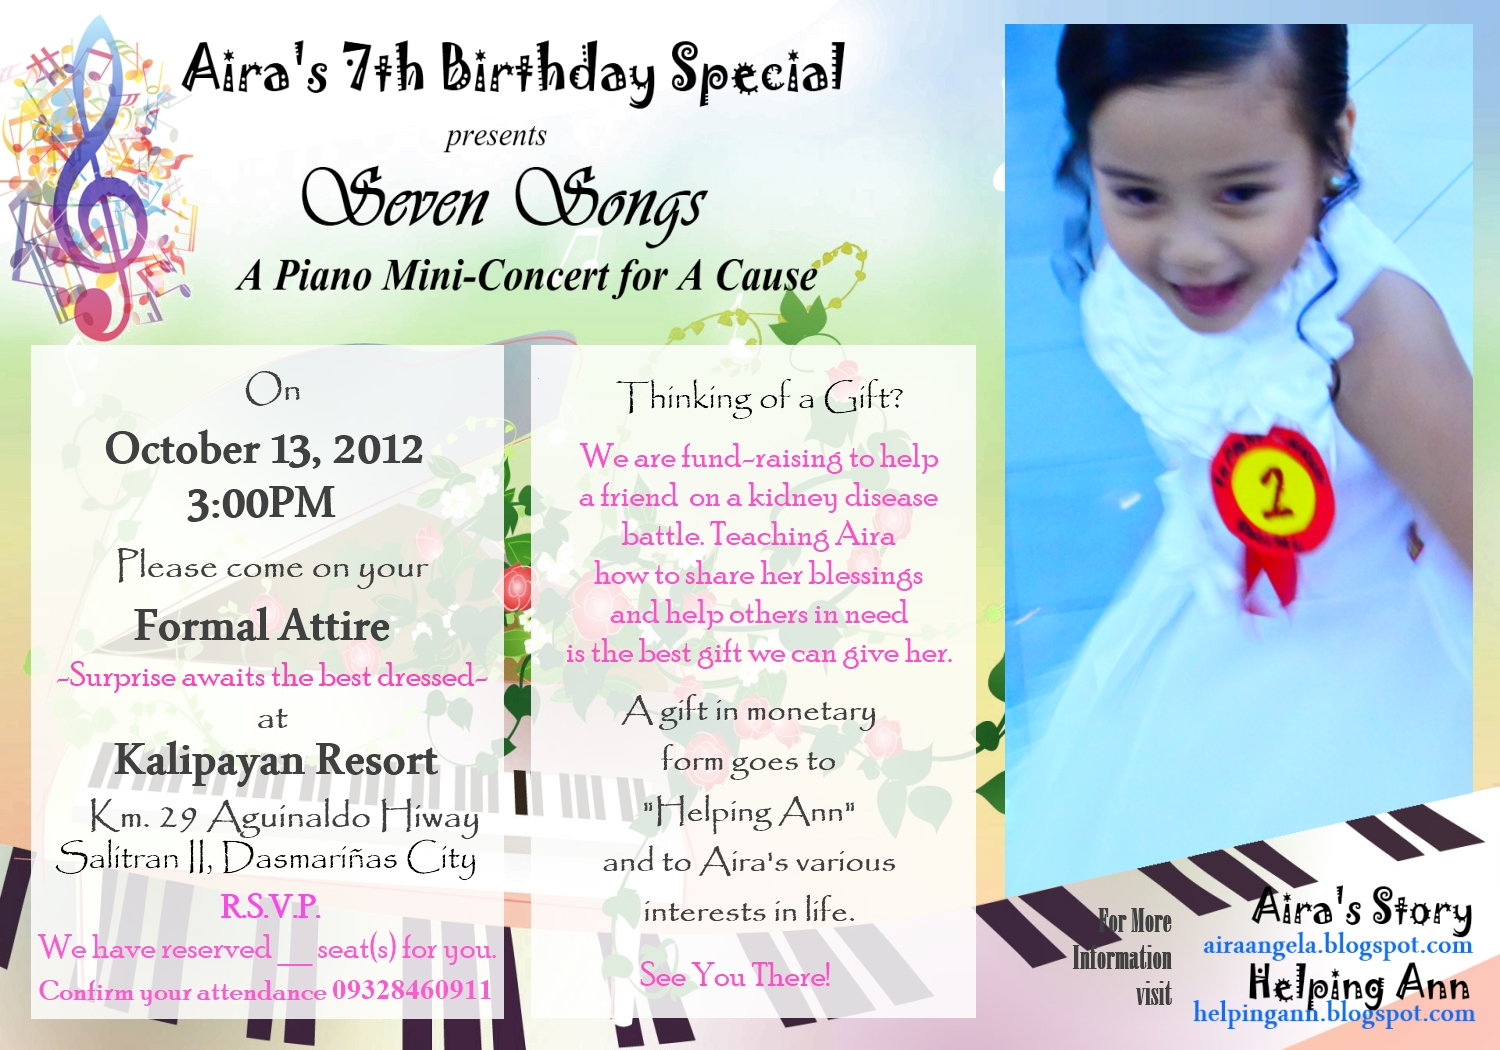 Aira S Story Seven Songs Aira S 7th Birthday Special